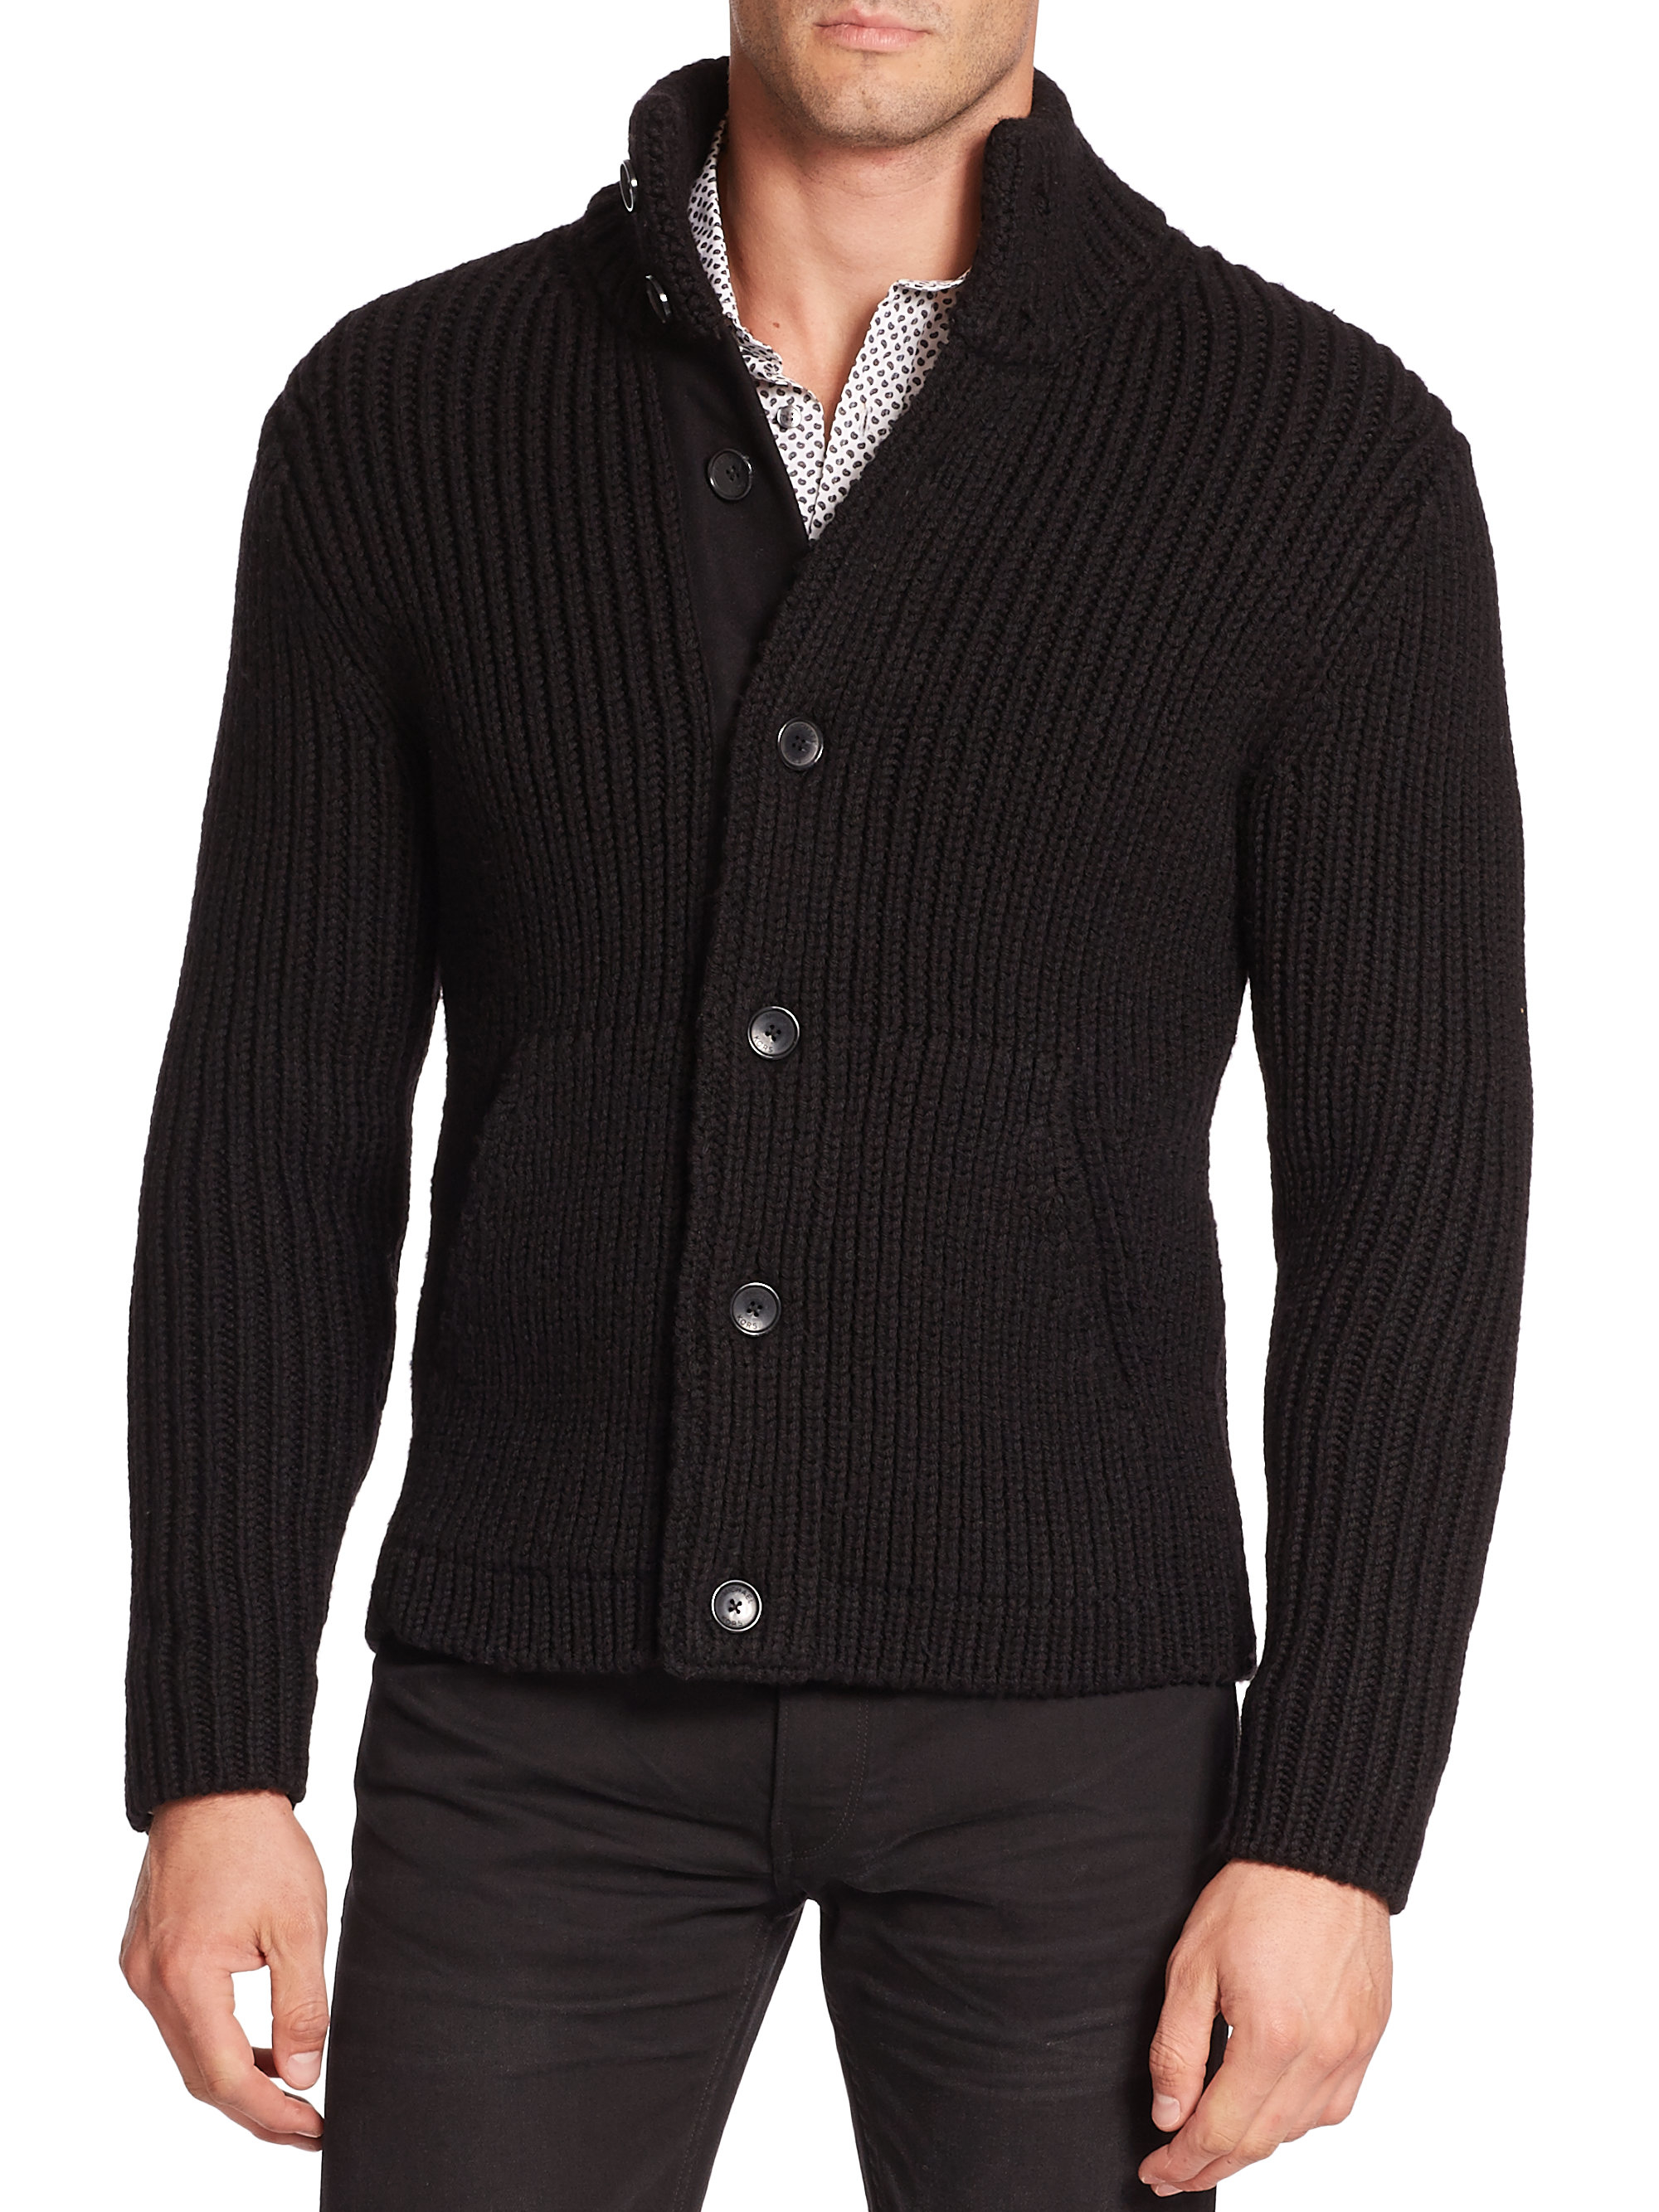 Shop eBay for great deals on Merino Wool Cardigan Sweaters for Men. You'll find new or used products in Merino Wool Cardigan Sweaters for Men on eBay. Free shipping on selected items.